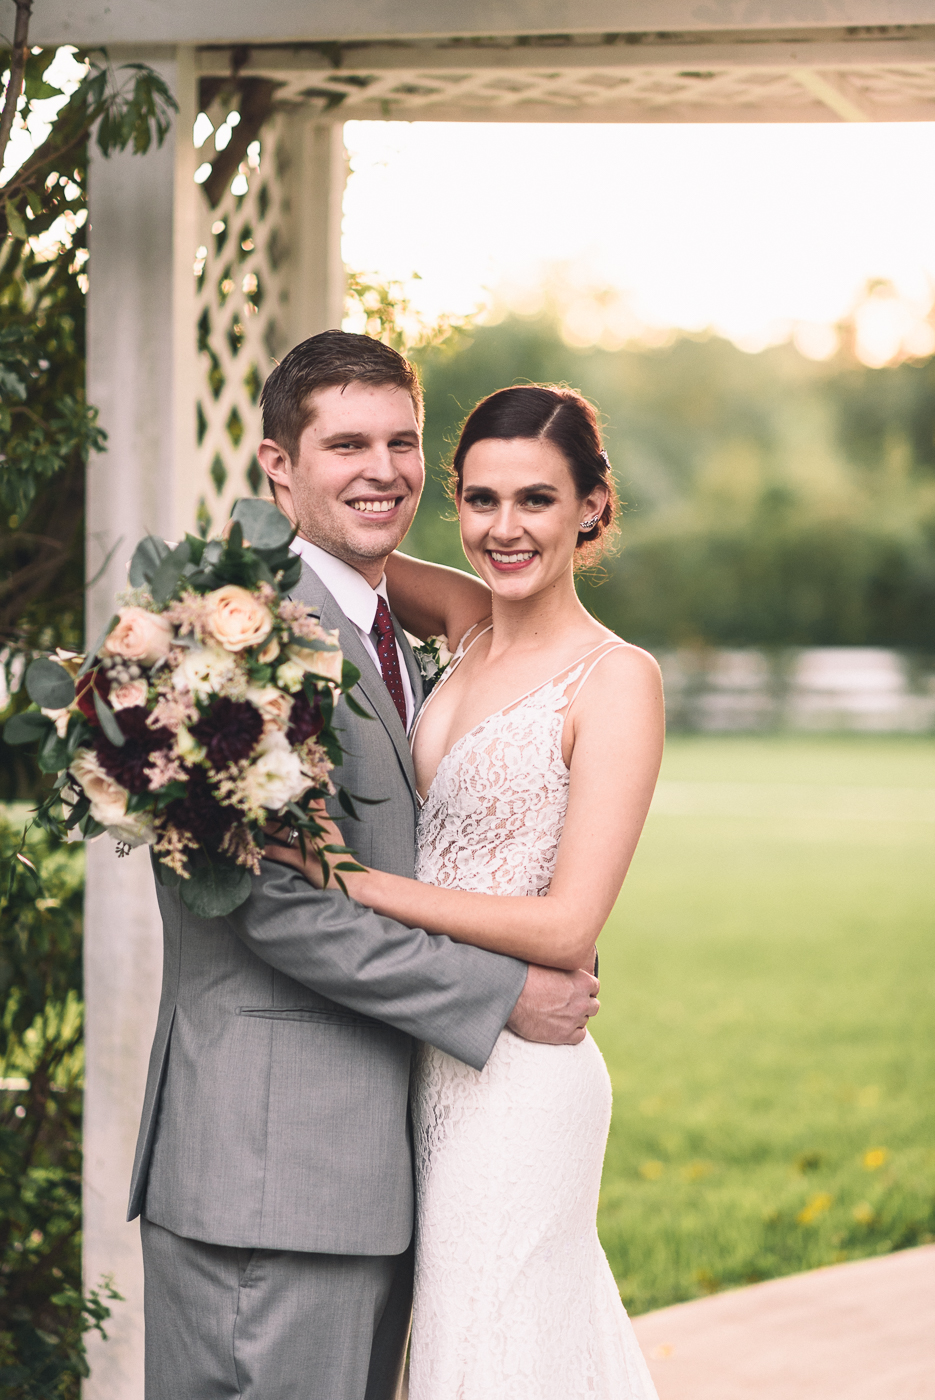 magnolia.texas.wedding (44 of 85).jpg